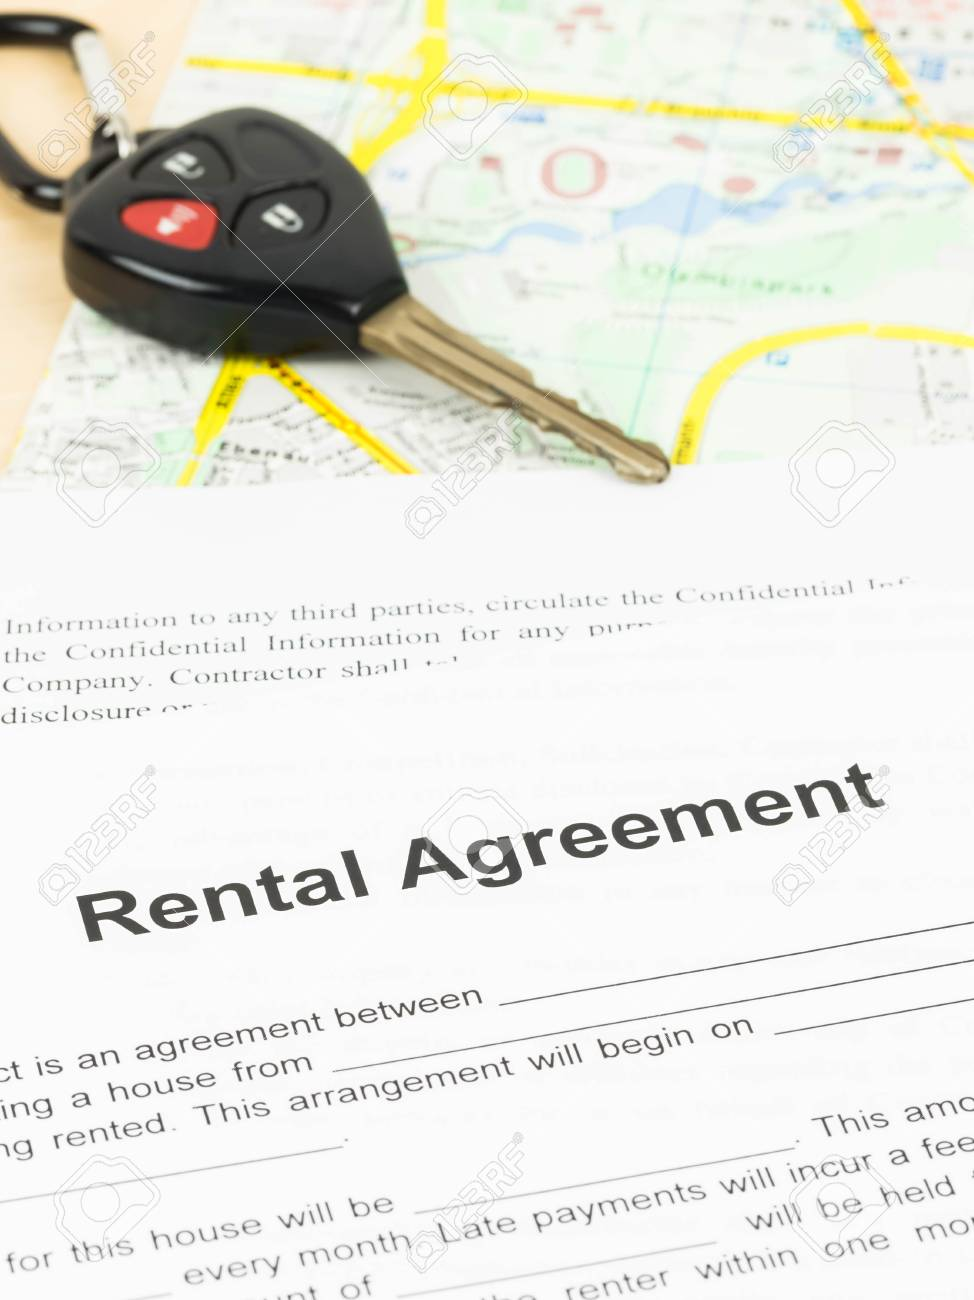 Car Rental Agreement With Key And Map Stock Photo - 32254658